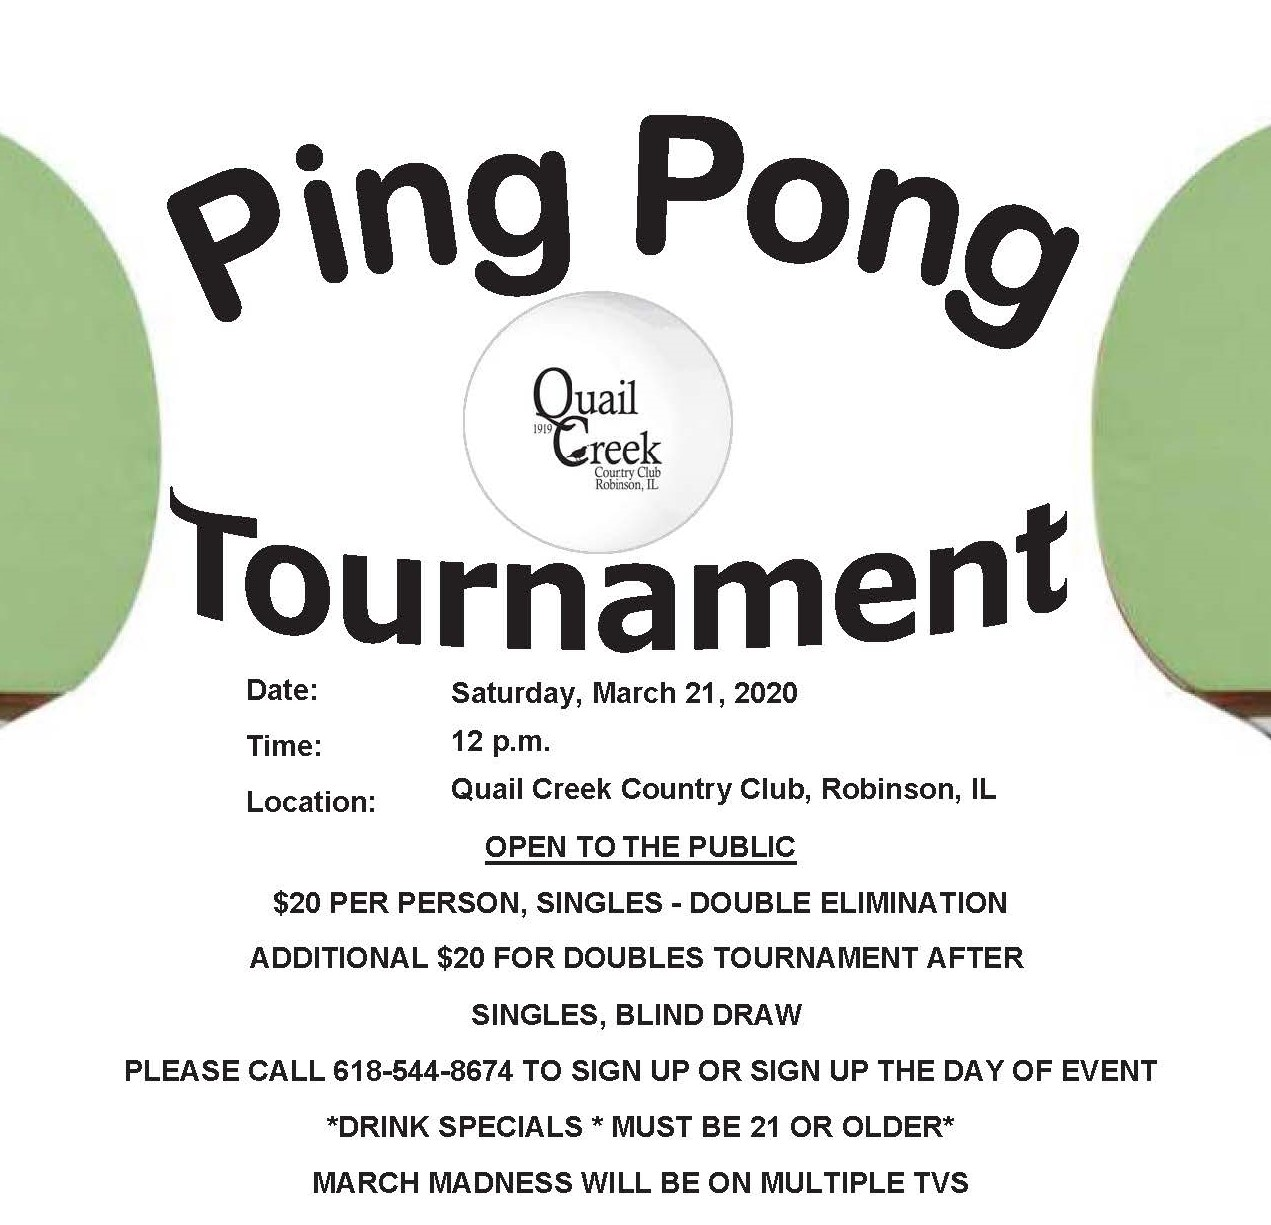 PING PONG FLYER 2020